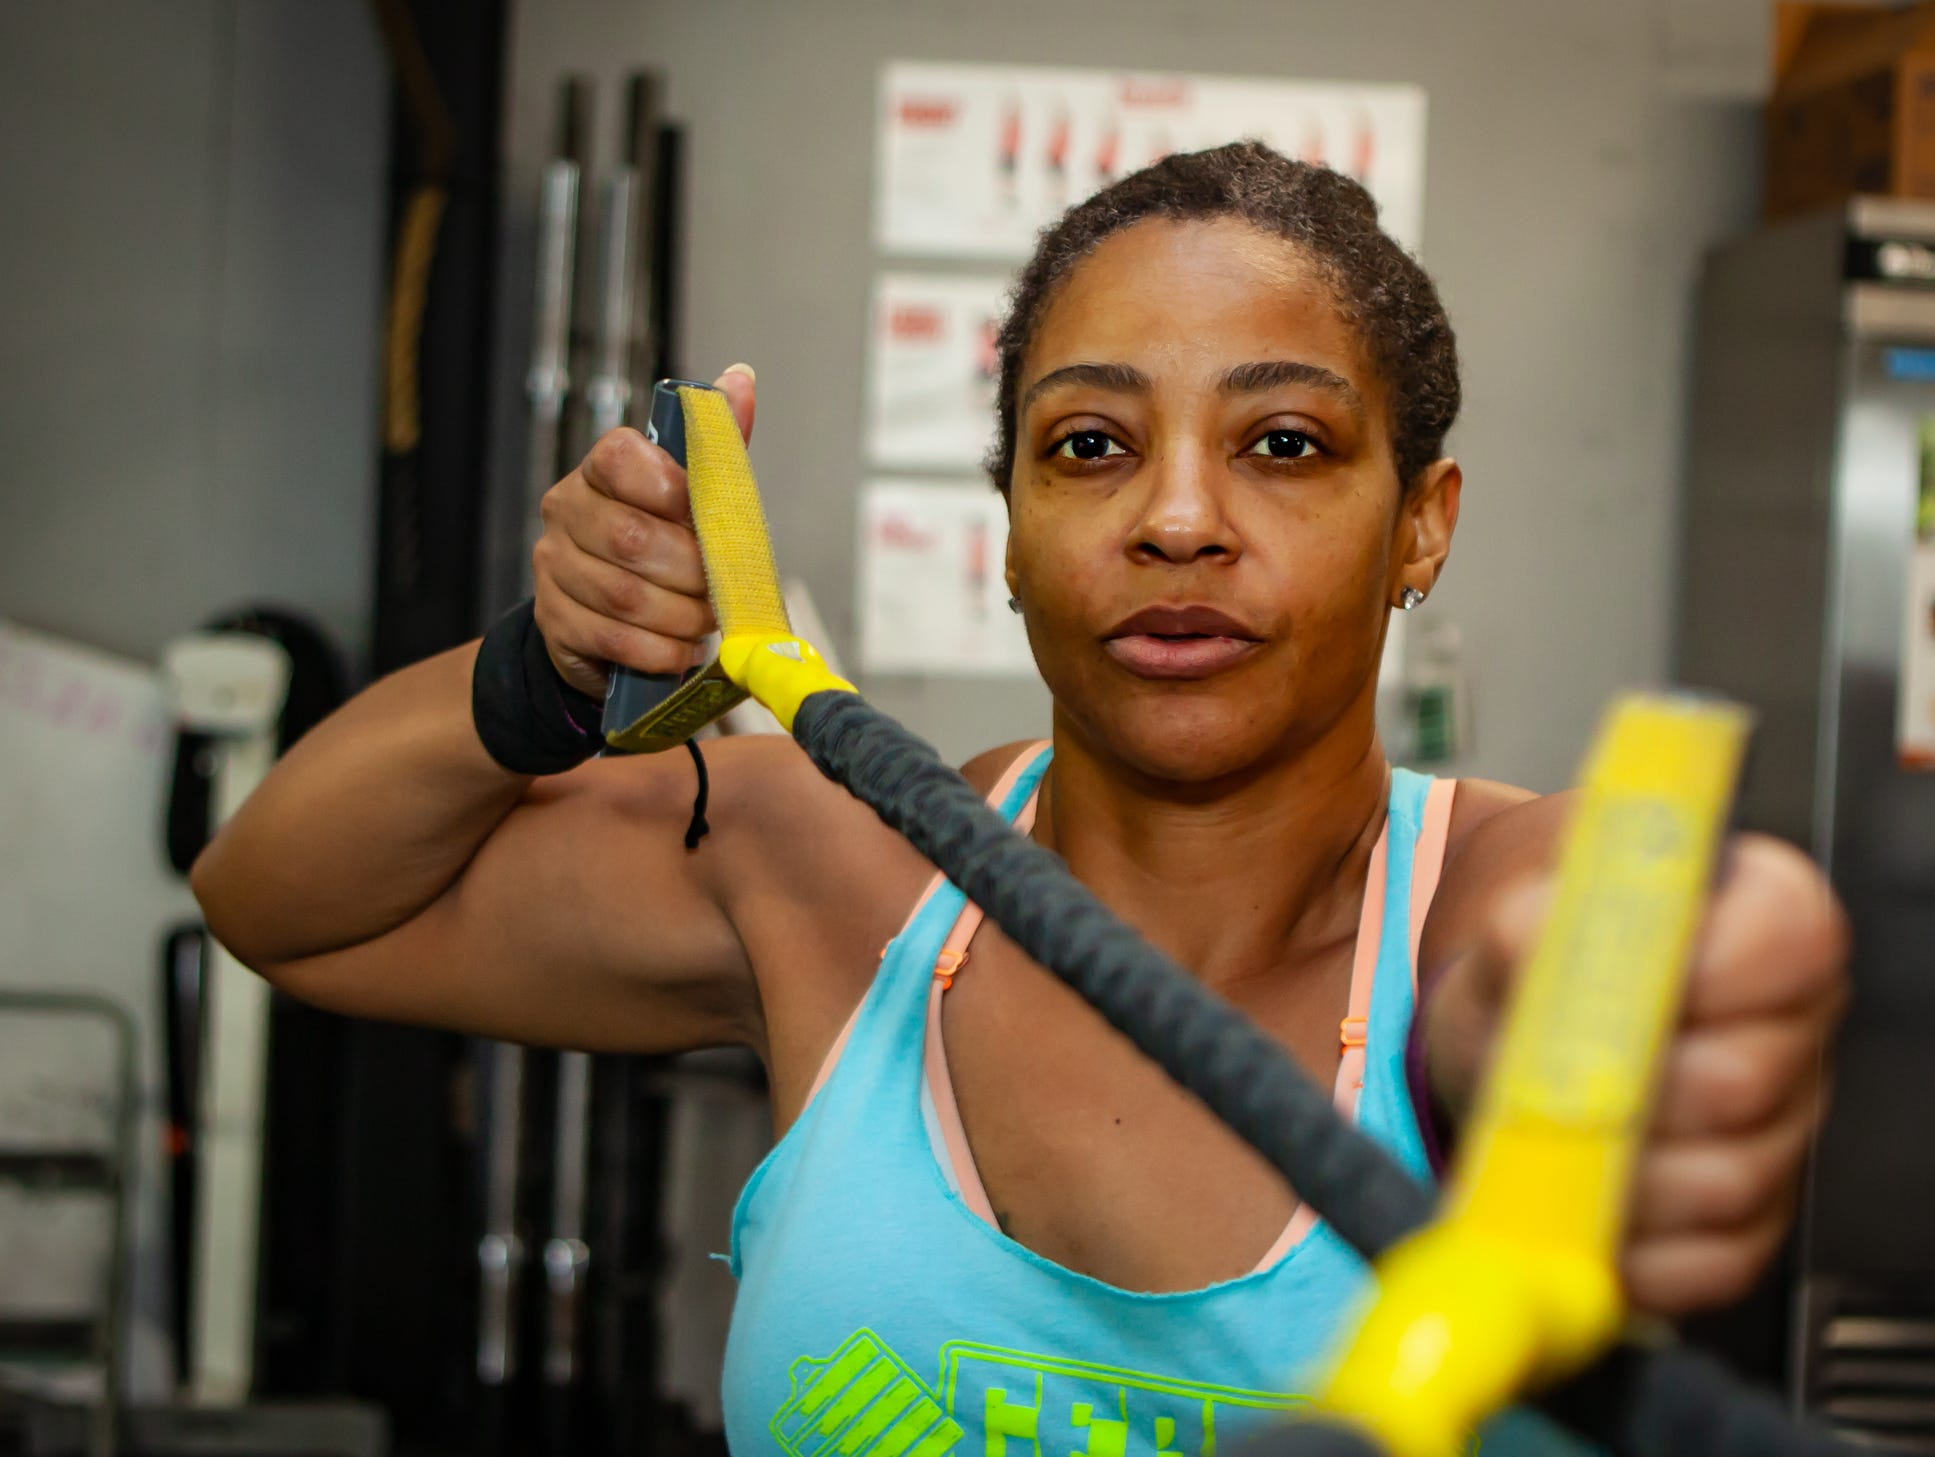 CrossFit Barbell Batallion athlete Pam McCluney works out in downtown Murfreesboro.